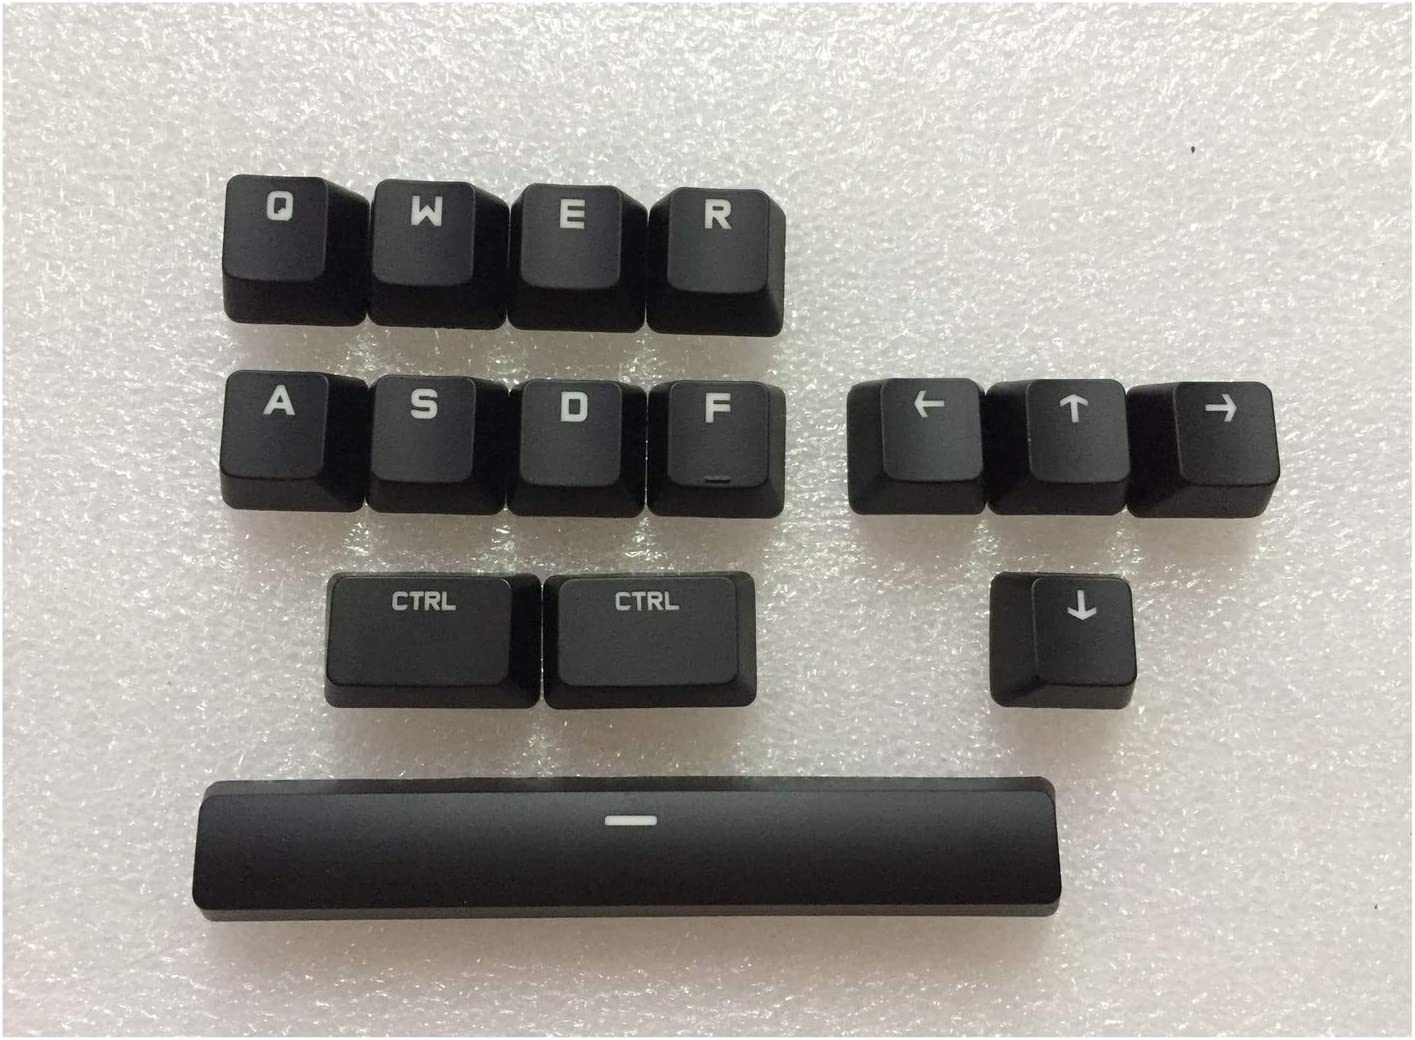 Keyboard keycaps Original CTRL ALT TAB Space Shift Key Cover and Free Key Cover Puller for Mechanical Keyboard G610 Axis Body : Key Cap only, Color : Whole Set Key caps